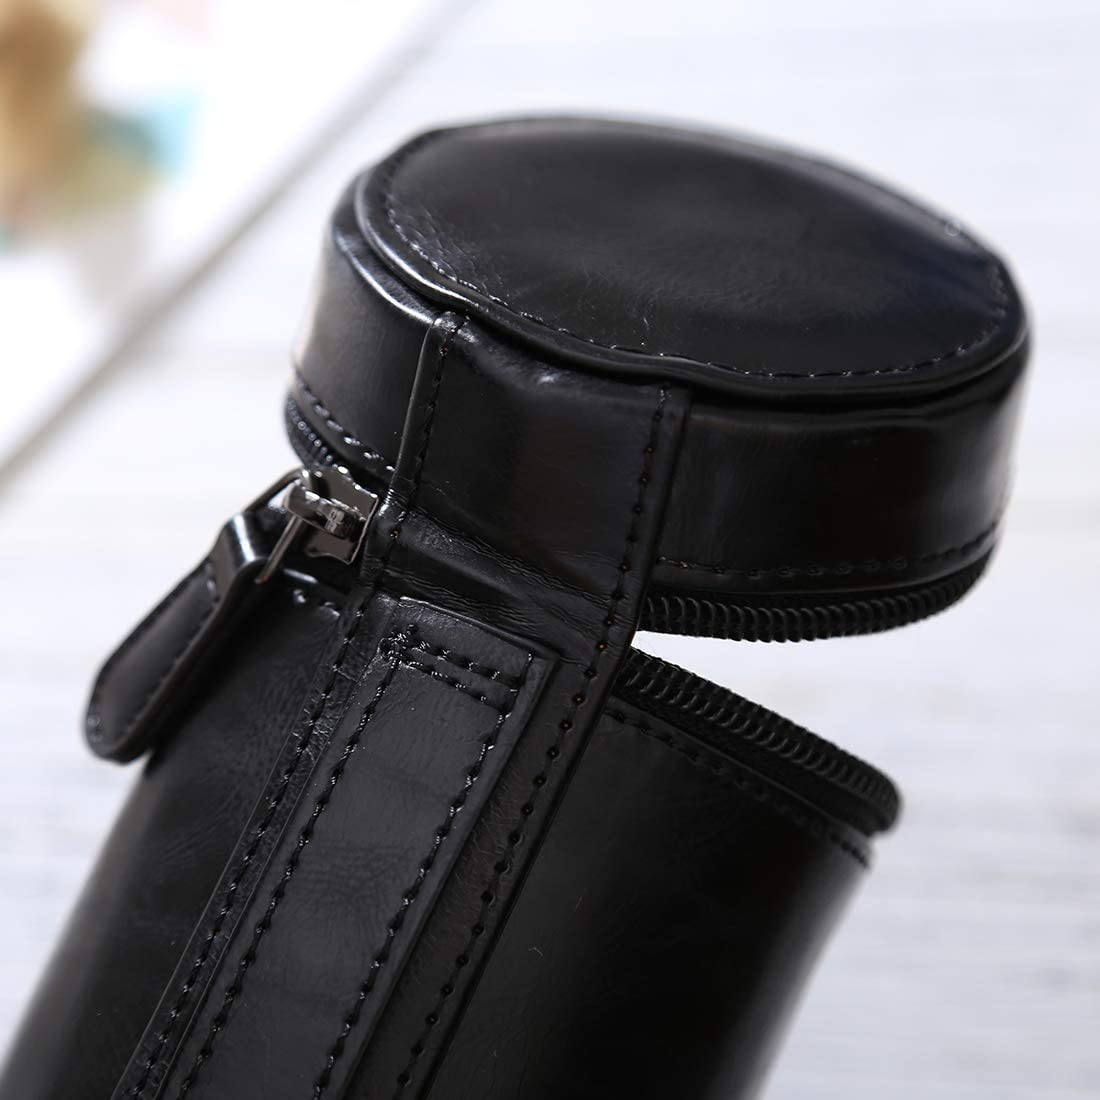 Color : Black HoodensYHM Small Lens Case Zippered PU Leather Pouch Box for DSLR Camera Lens Size: 11x8x8cm Black